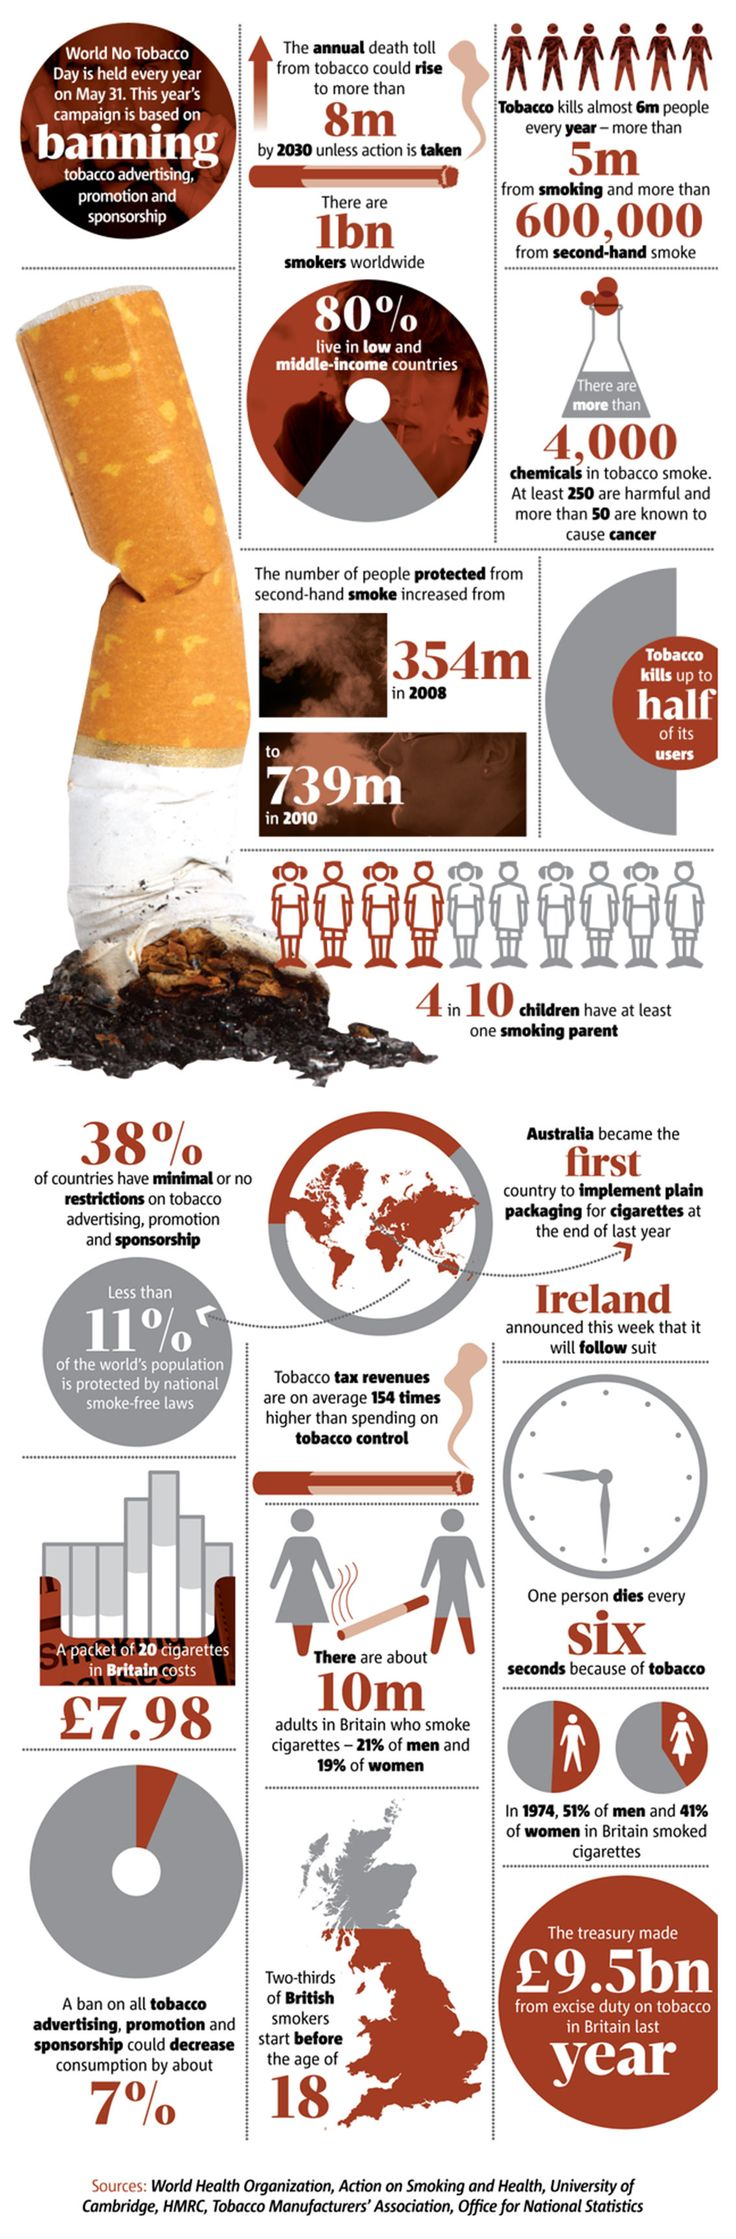 best ideas about tobacco facts facts about world no tobacco day smoking statistics infographic topic smoking health